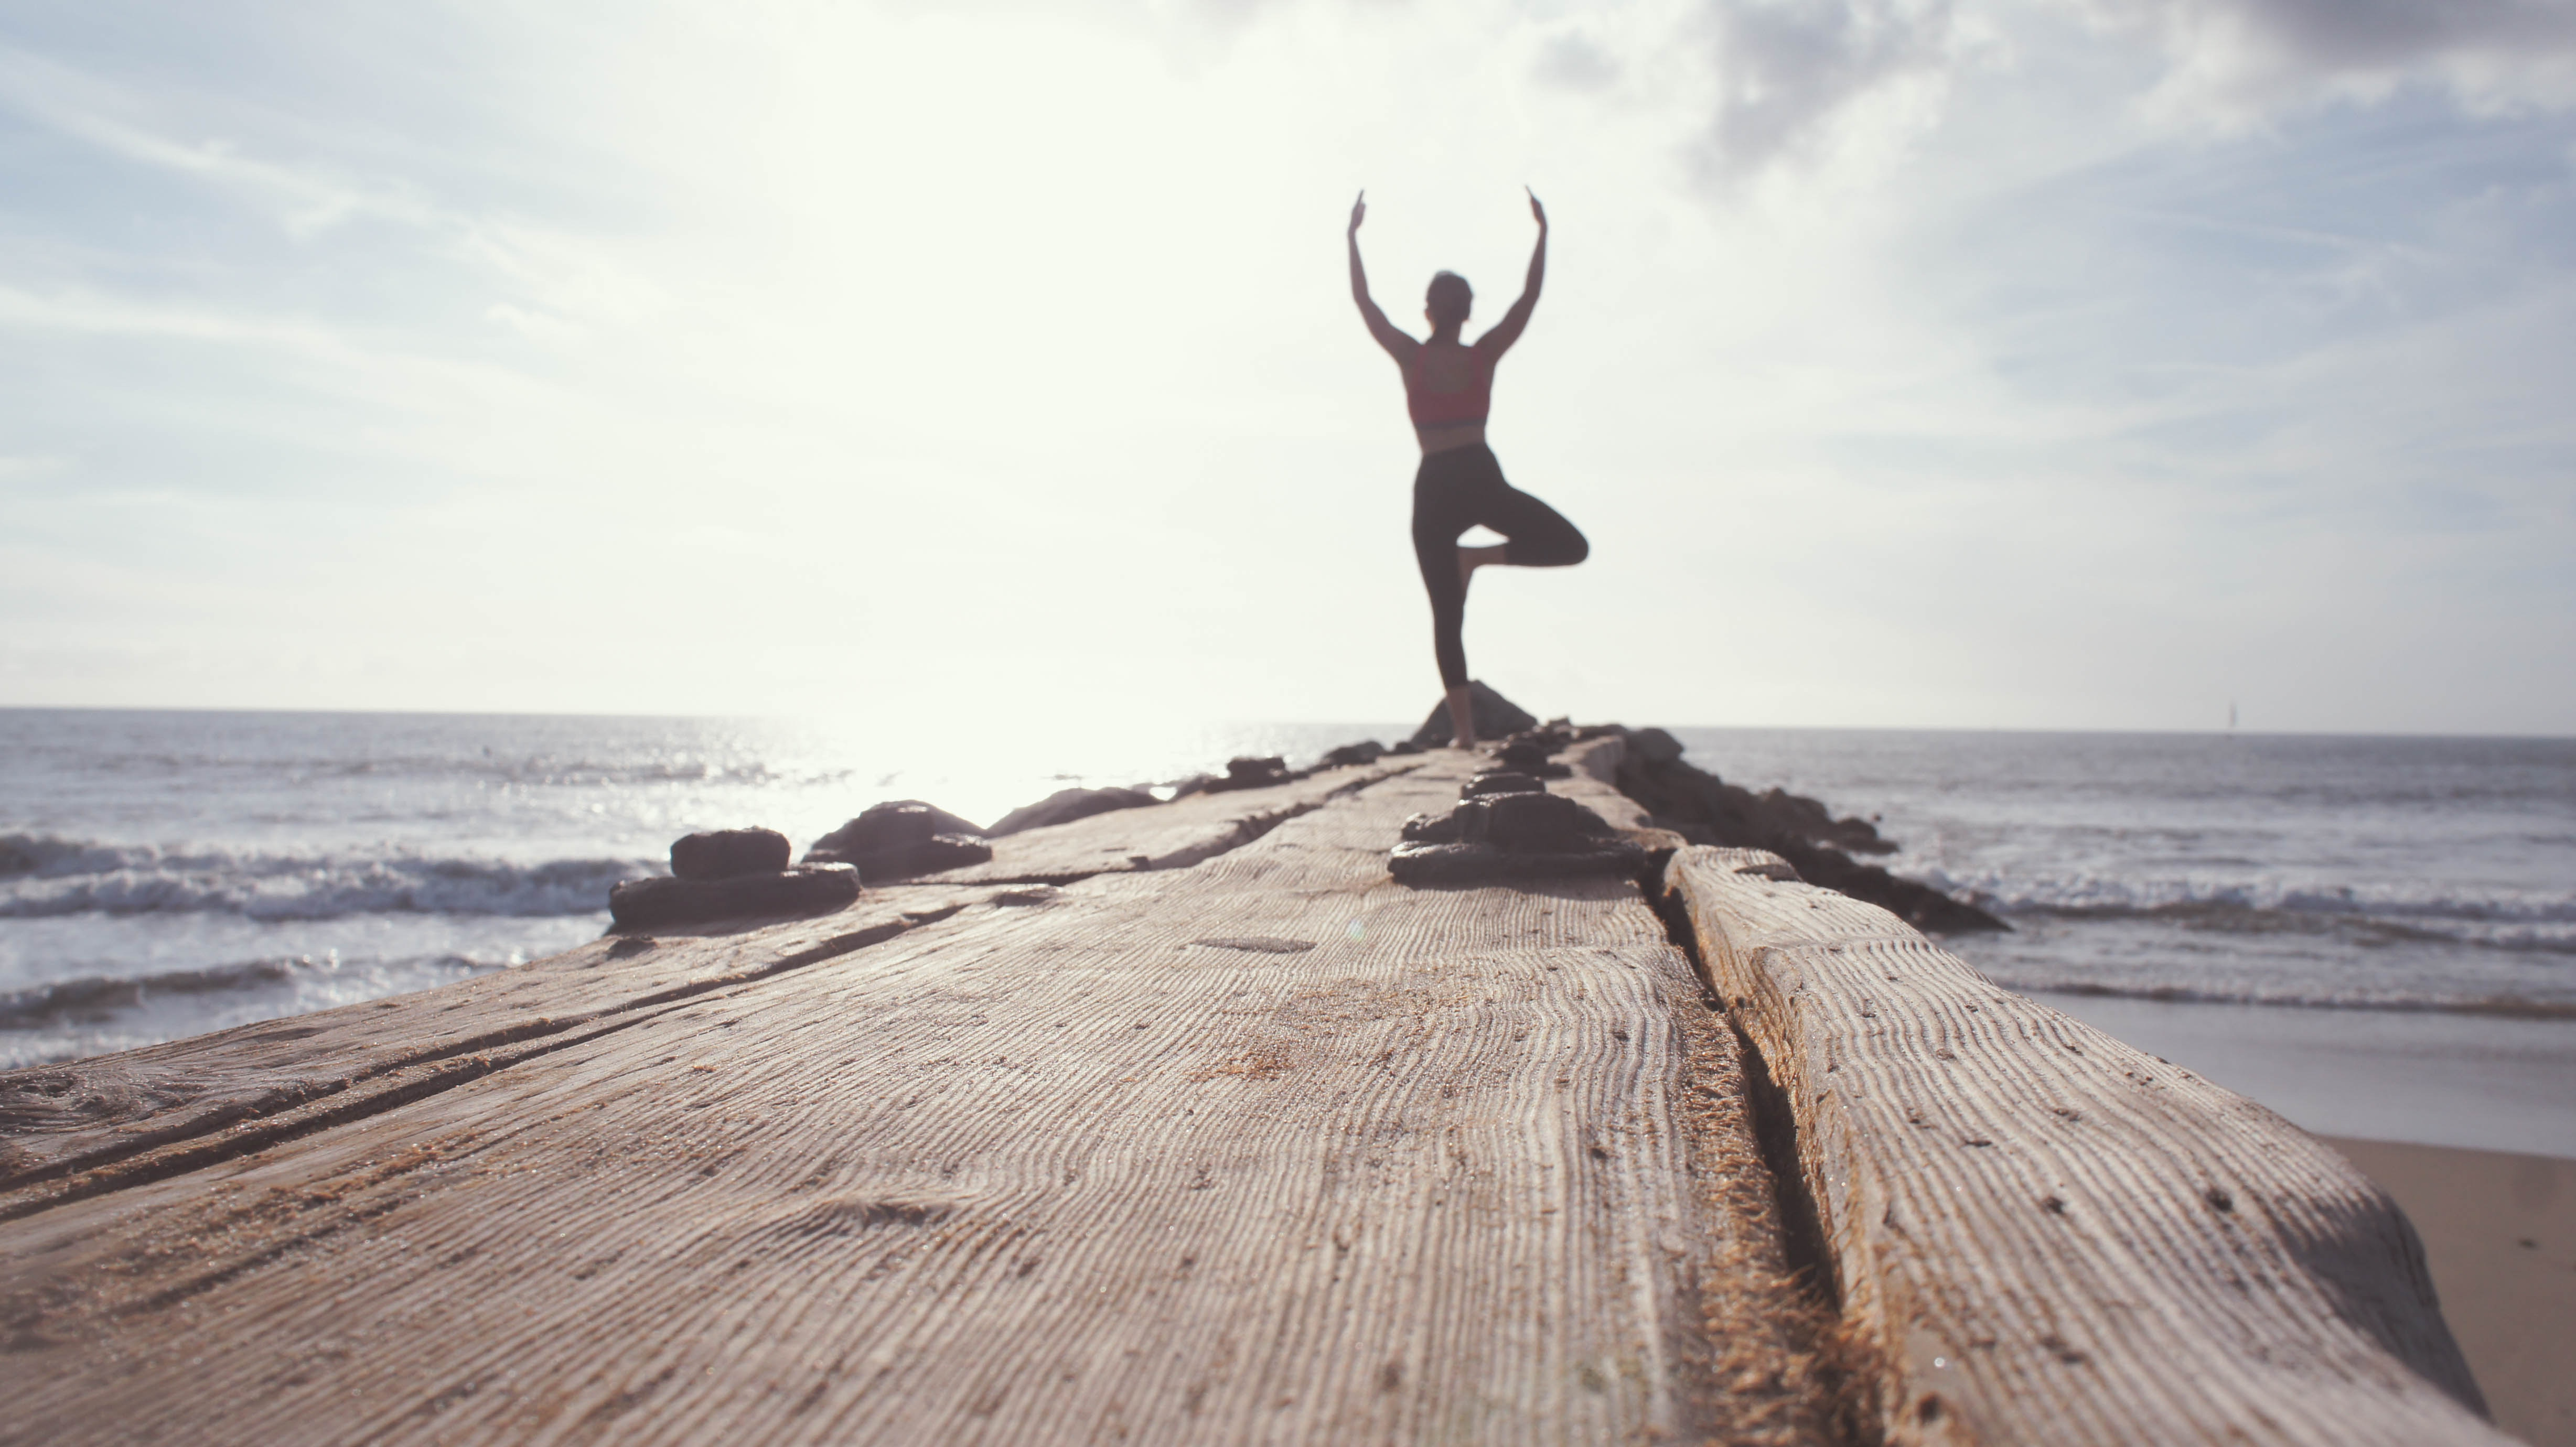 Reasons Why Your Business Should Have A Wellness Program